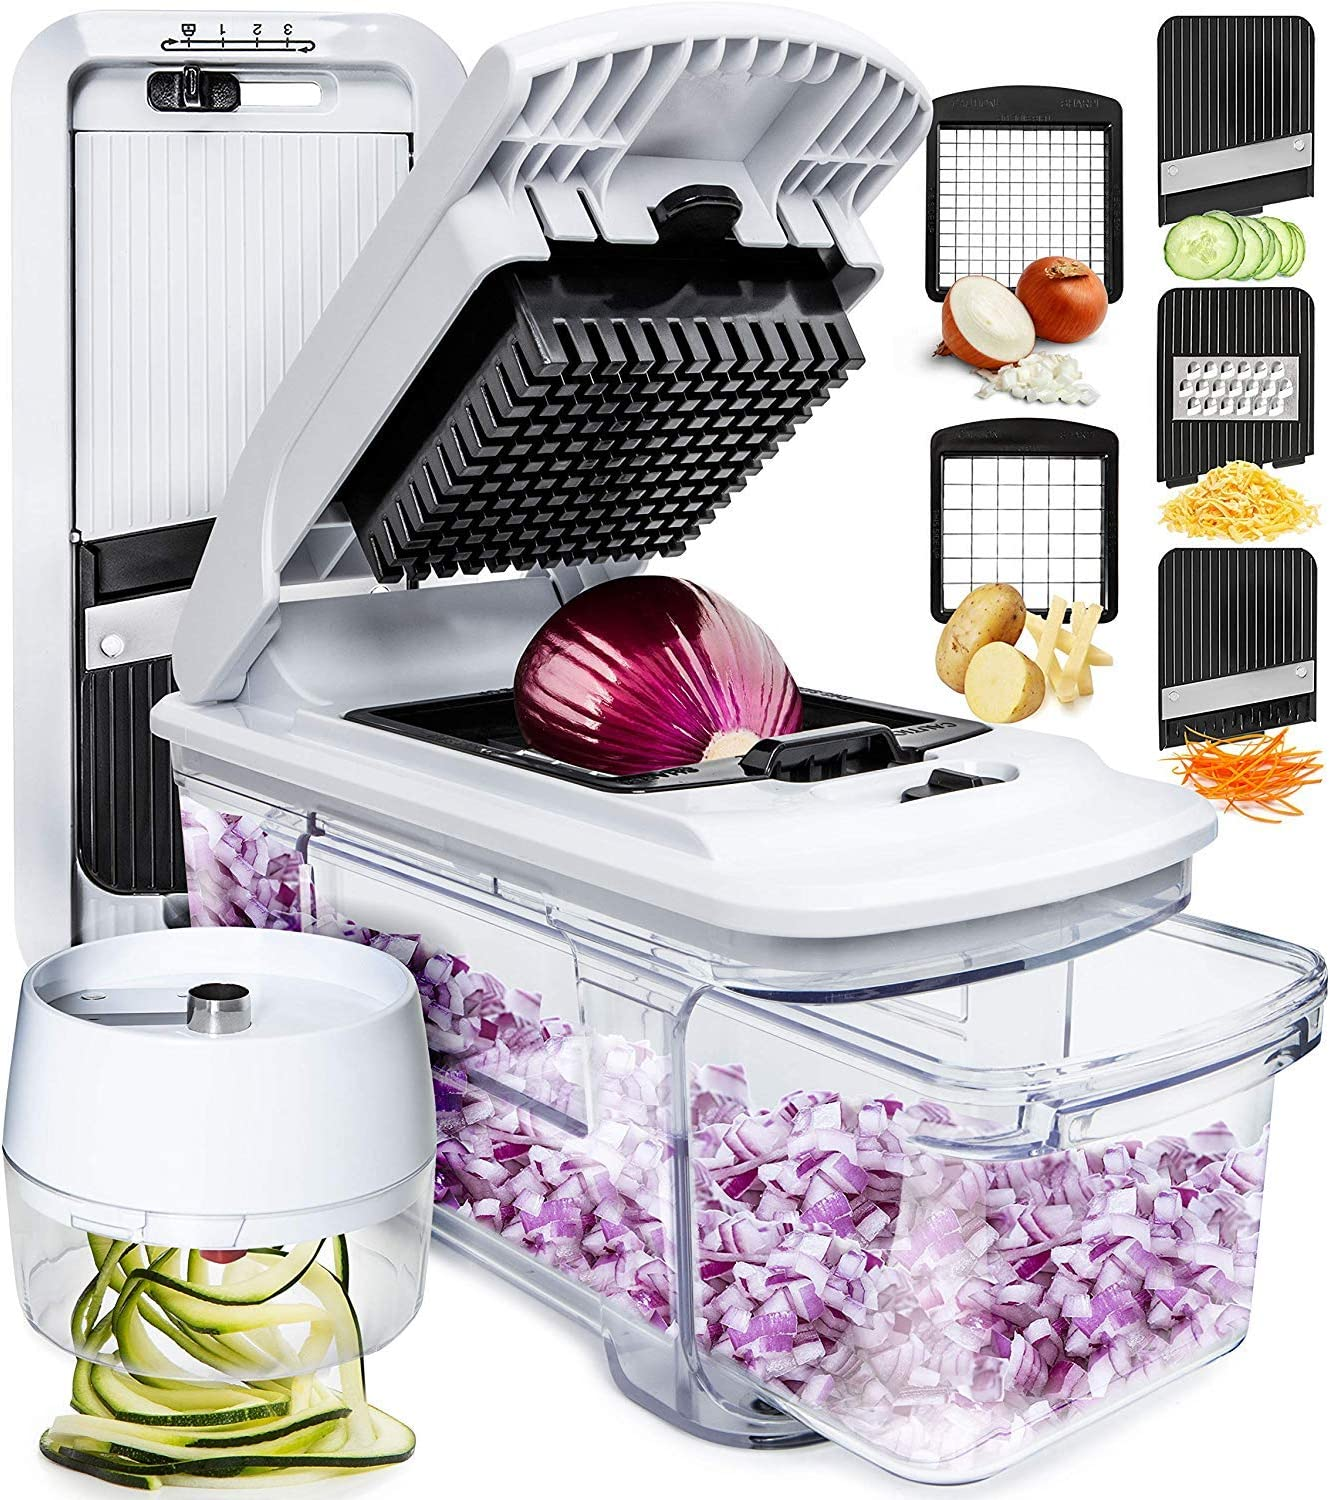 fullstar Mandoline Slicer Spiralizer Vegetable Slicer